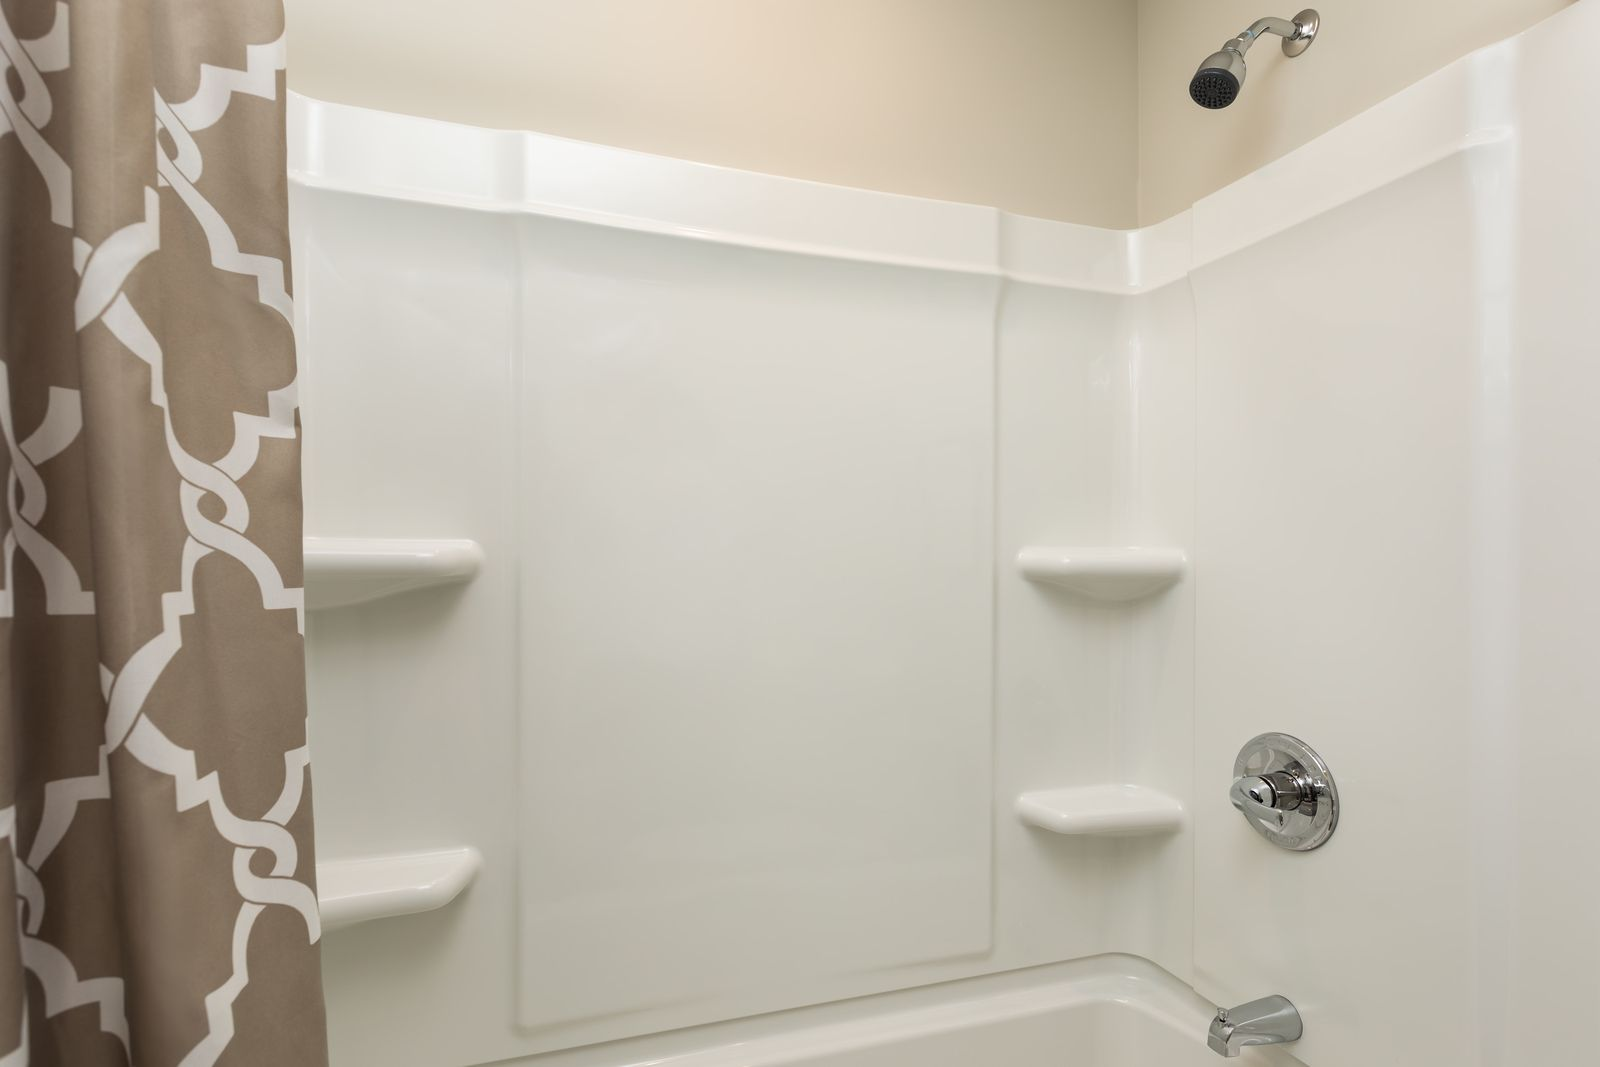 Bathroom featured in the Spruce By Ryan Homes in Hagerstown, MD